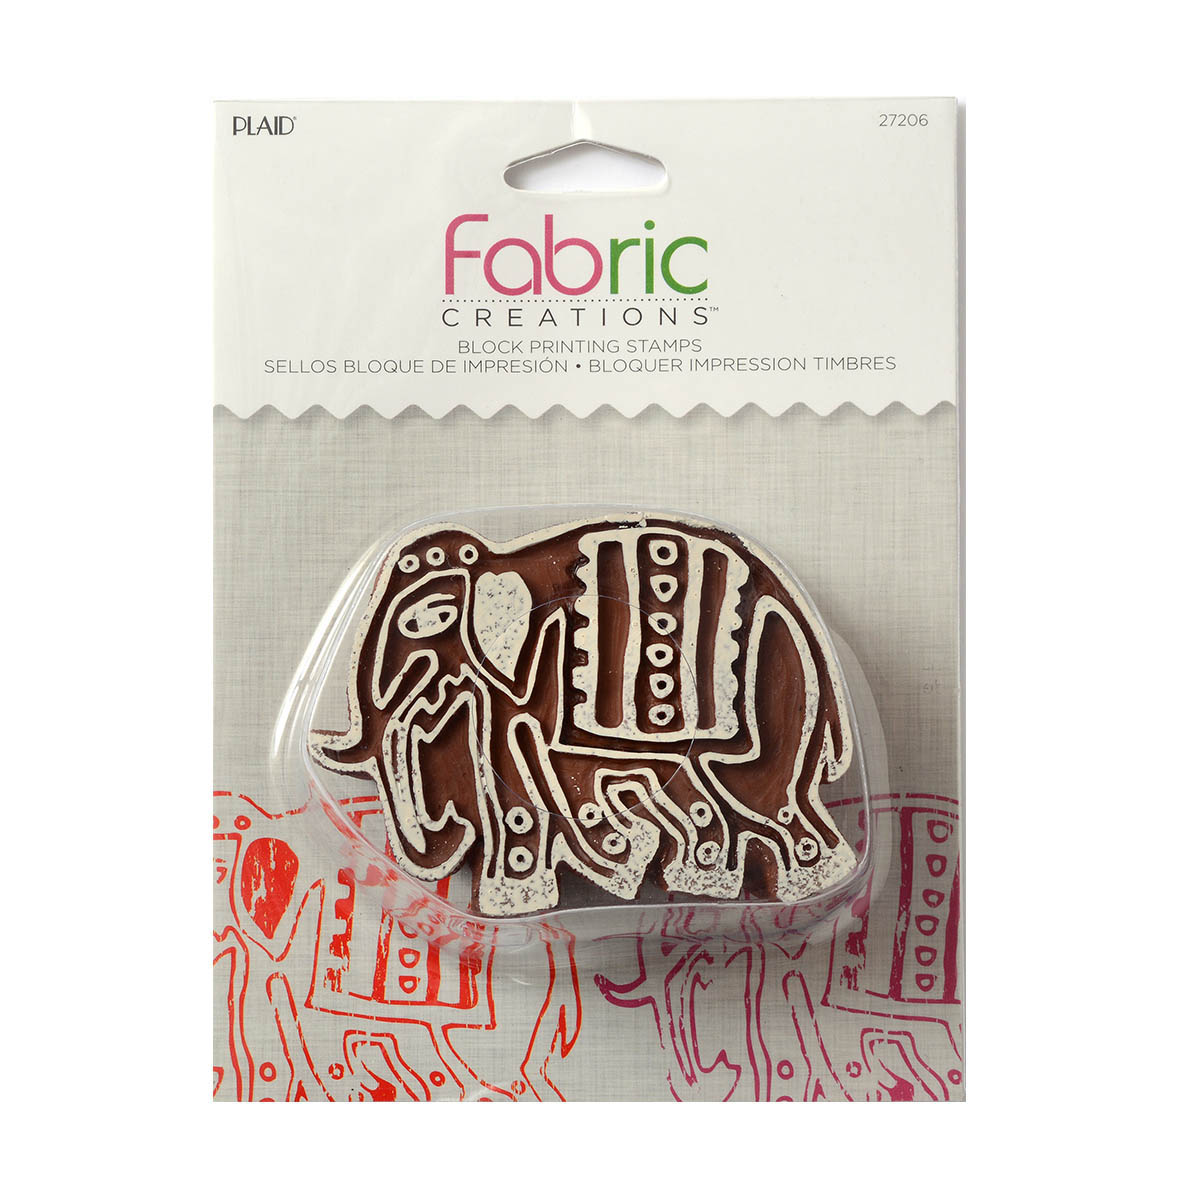 Fabric Creations™ Block Printing Stamps - Medium - Parade Elephant